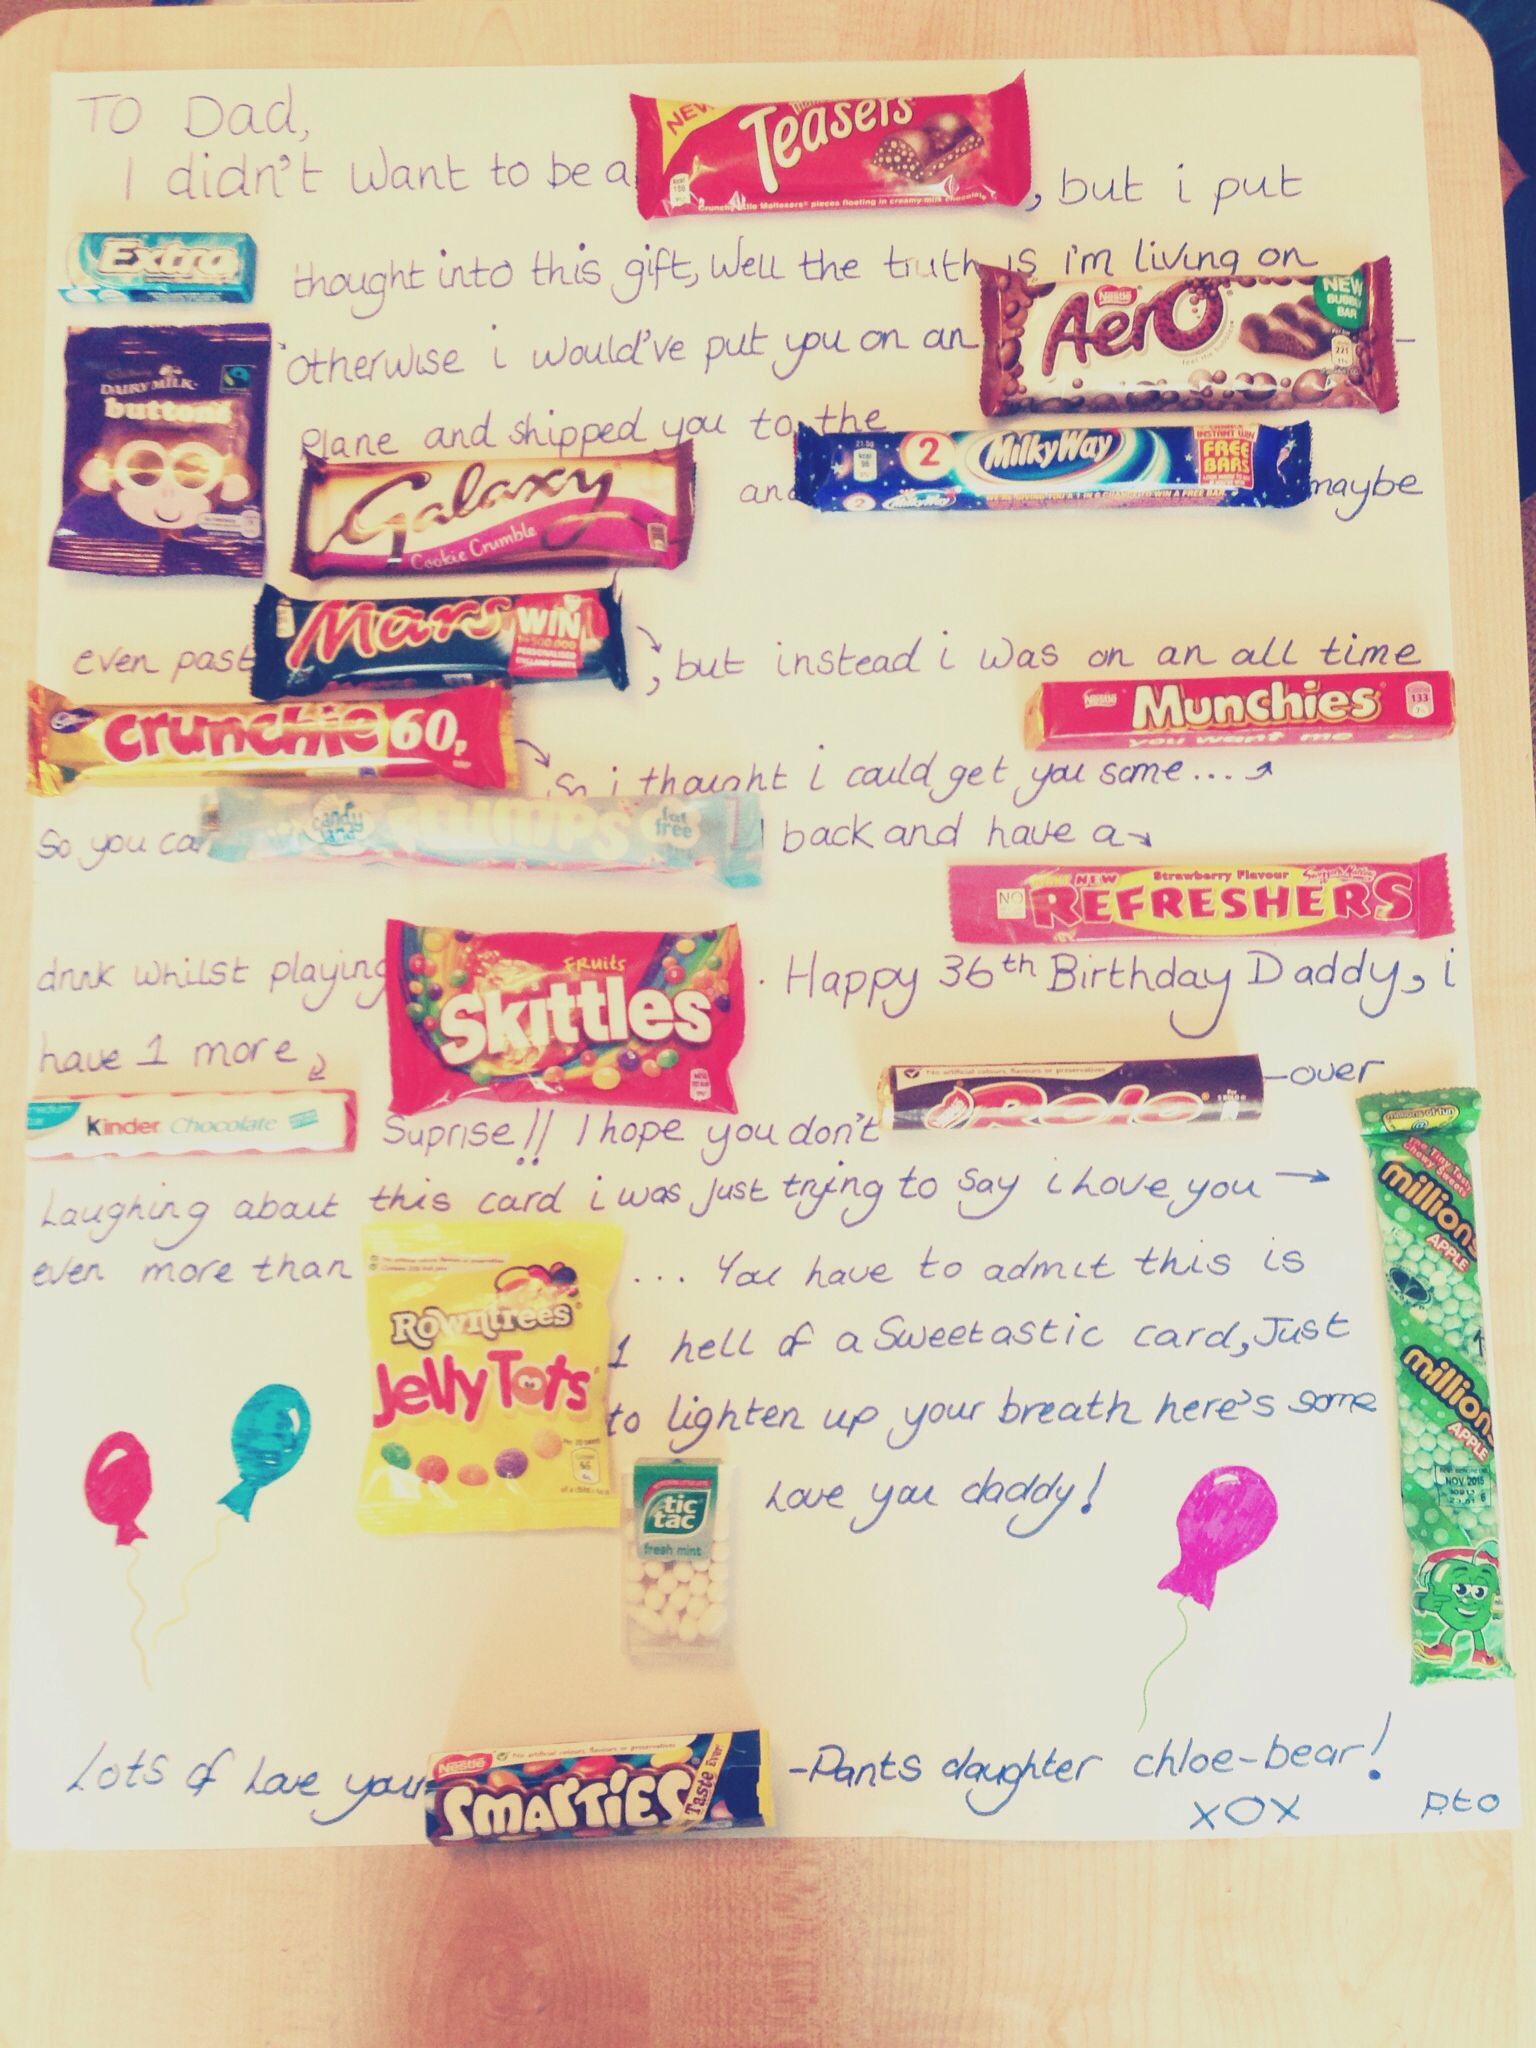 Dad Birthday Card Ideas Handmade Birthday Card Ideas For Daughter Uk Sweets Card For Dad